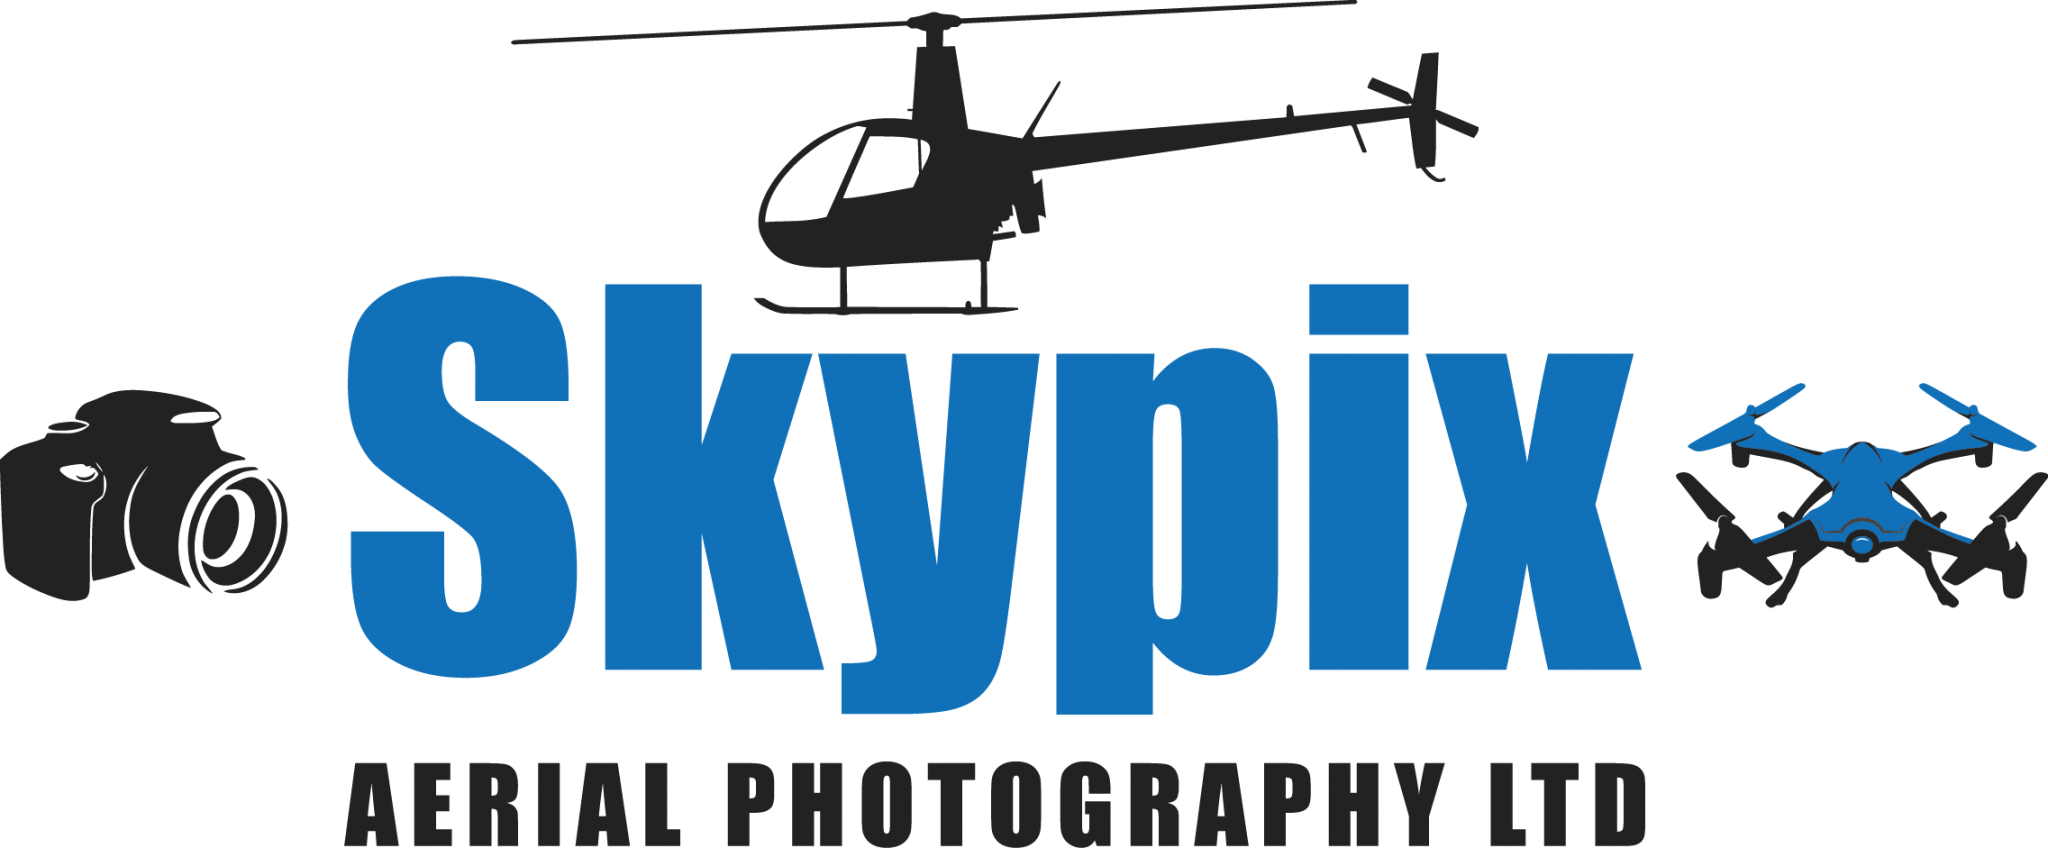 SkyPix Aerial Photography LTD.